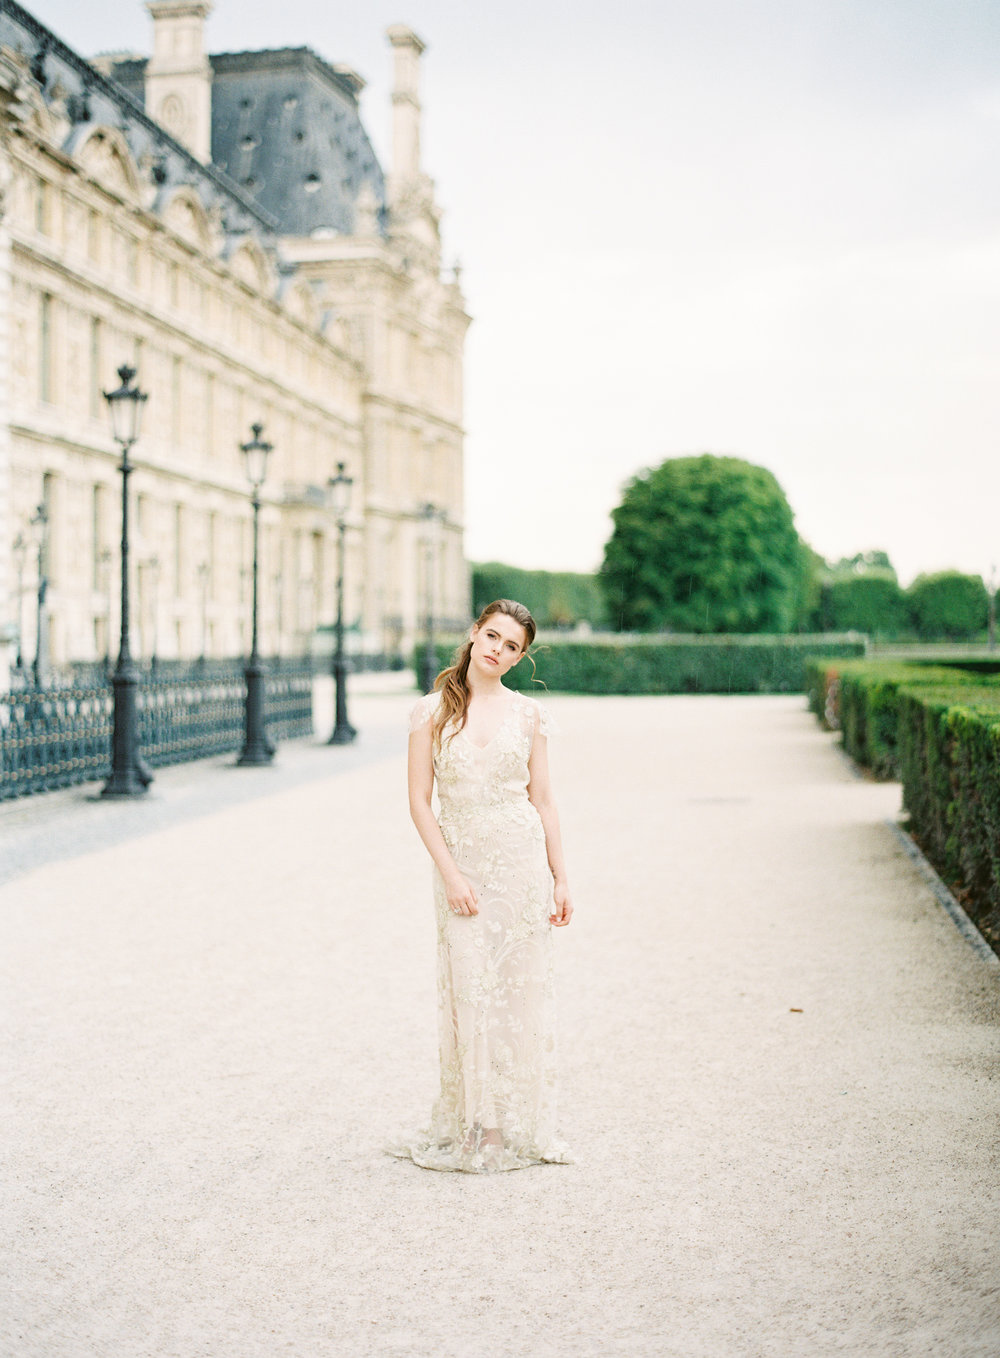 Paris wedding photographer | Paris film photographer | France wedding photographer | France film photographer | Whiskers and Willow Photography